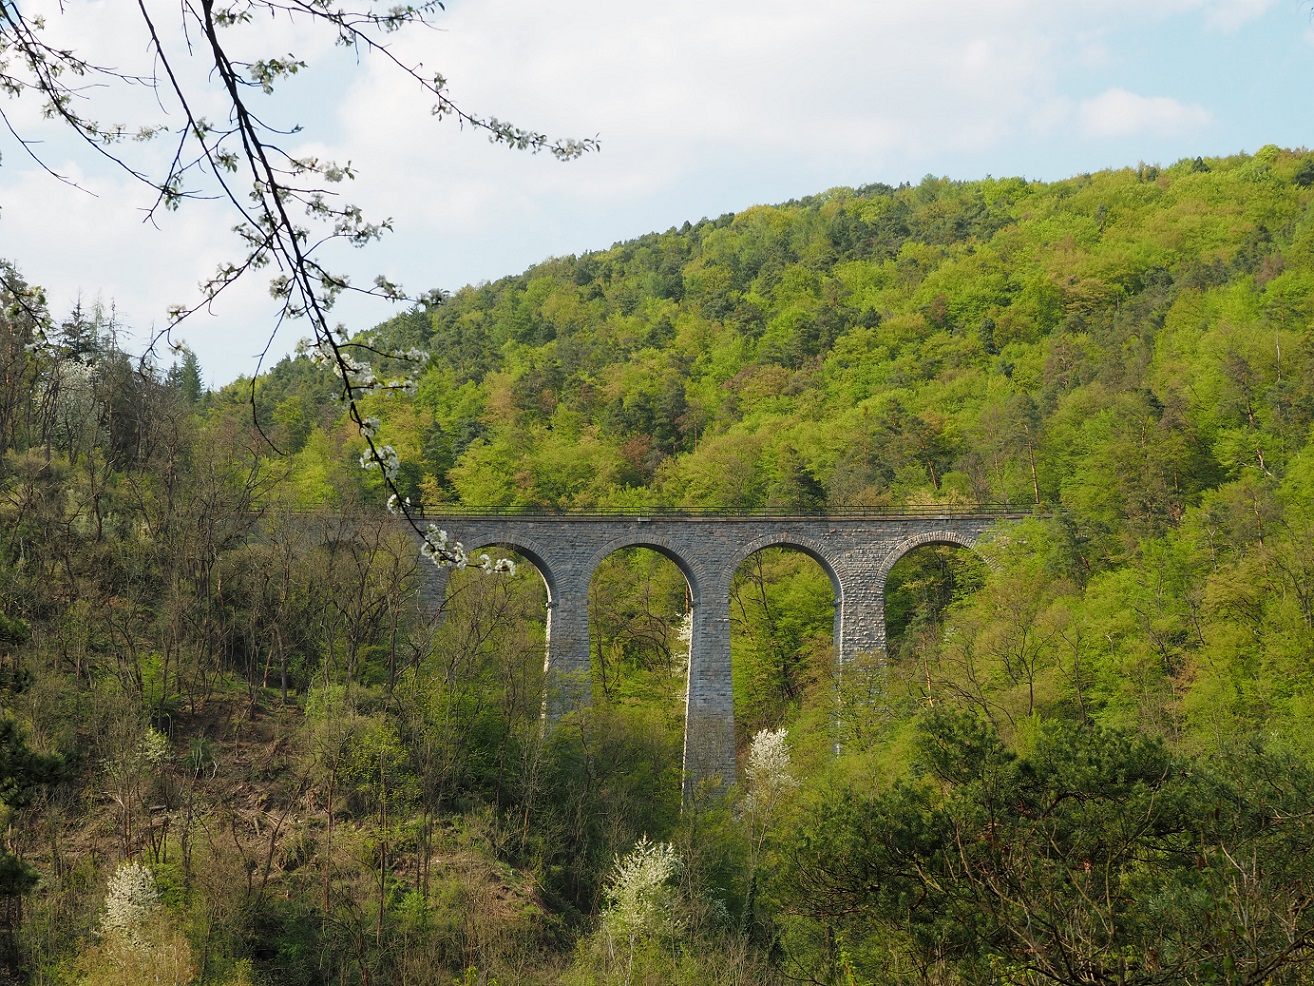 Zampassky viaduct, Žampach viaduct, Žampašský most in Czech Republic